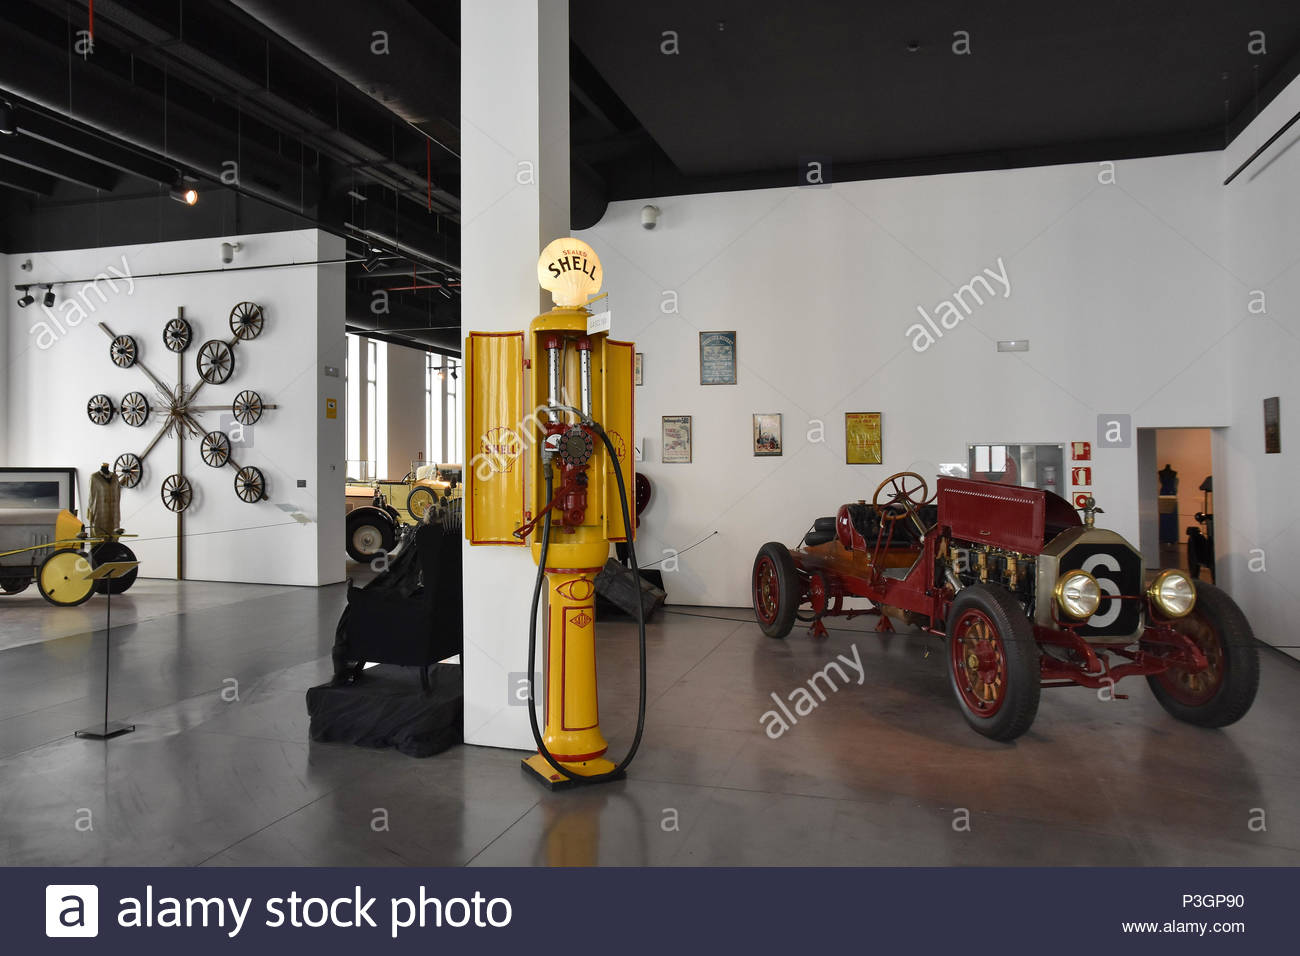 Exhibition room with classic vintage Royal Dutch Shell petrol pump displayed at Museum Of Automobiles (Museo Automovilístico) in Malaga Spain Europe. - Stock Image